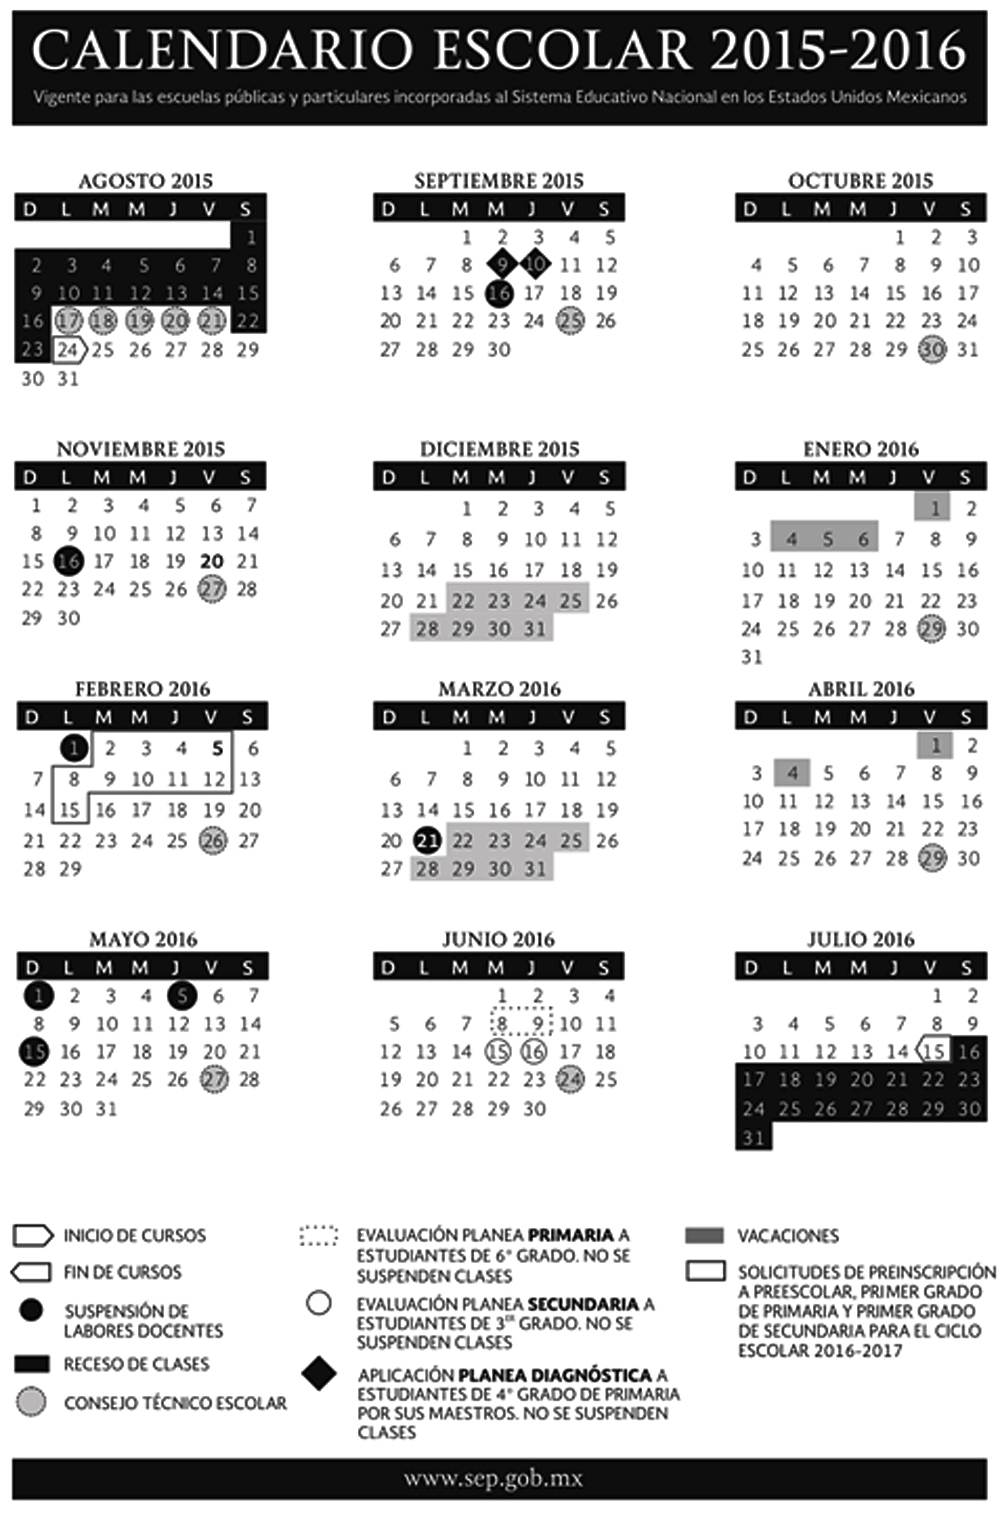 ... SEP publica calendario escolar 2015-2016 del Sistema Educativo